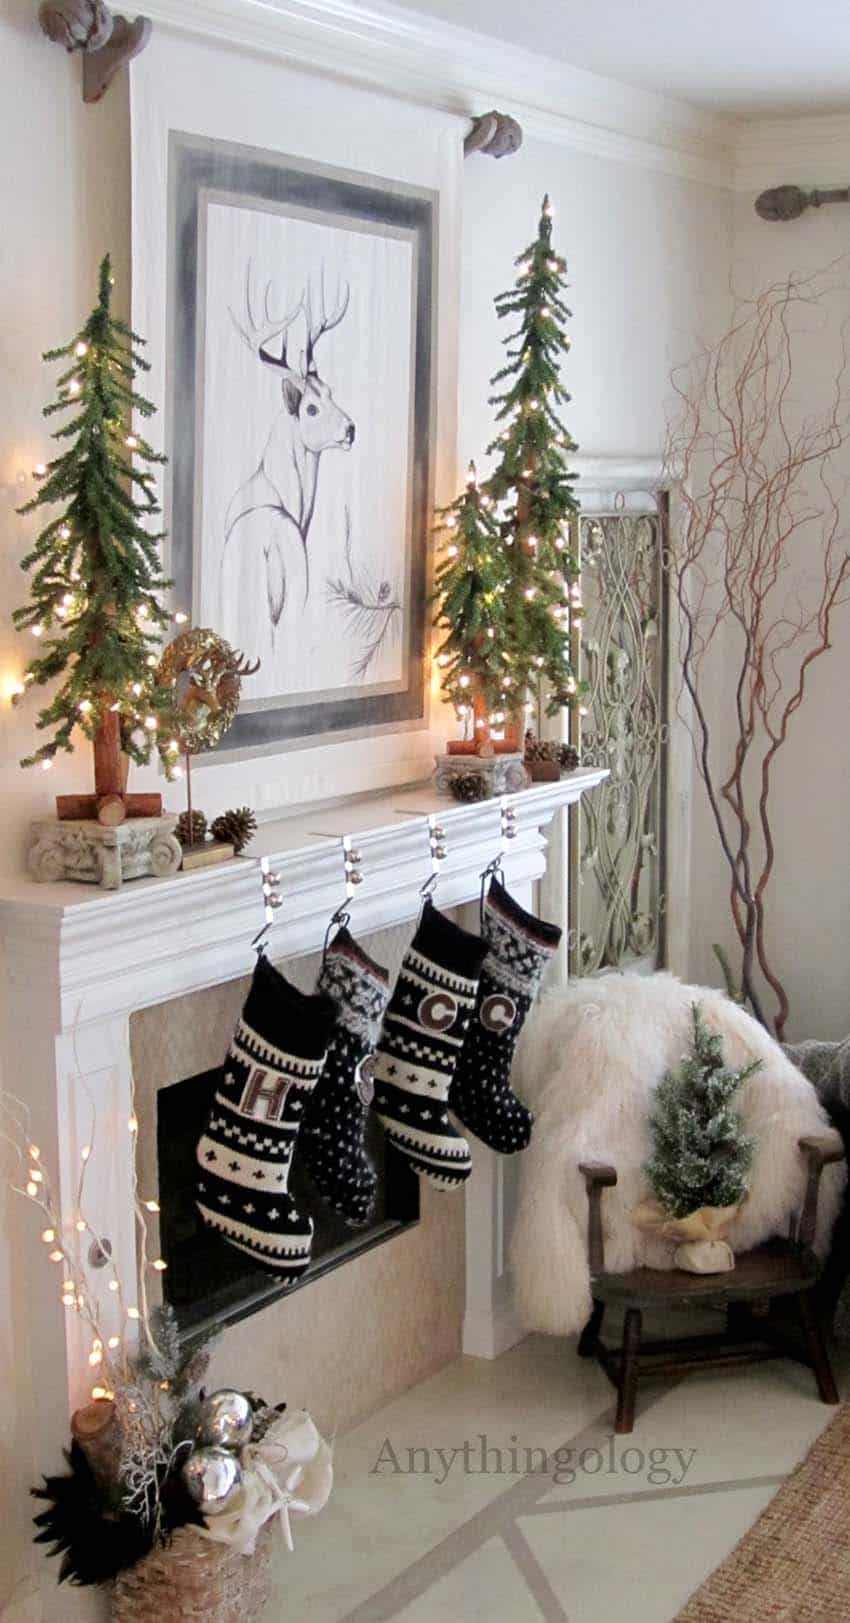 Christmas Mantel Decorating Ideas-55-1 Kindesign